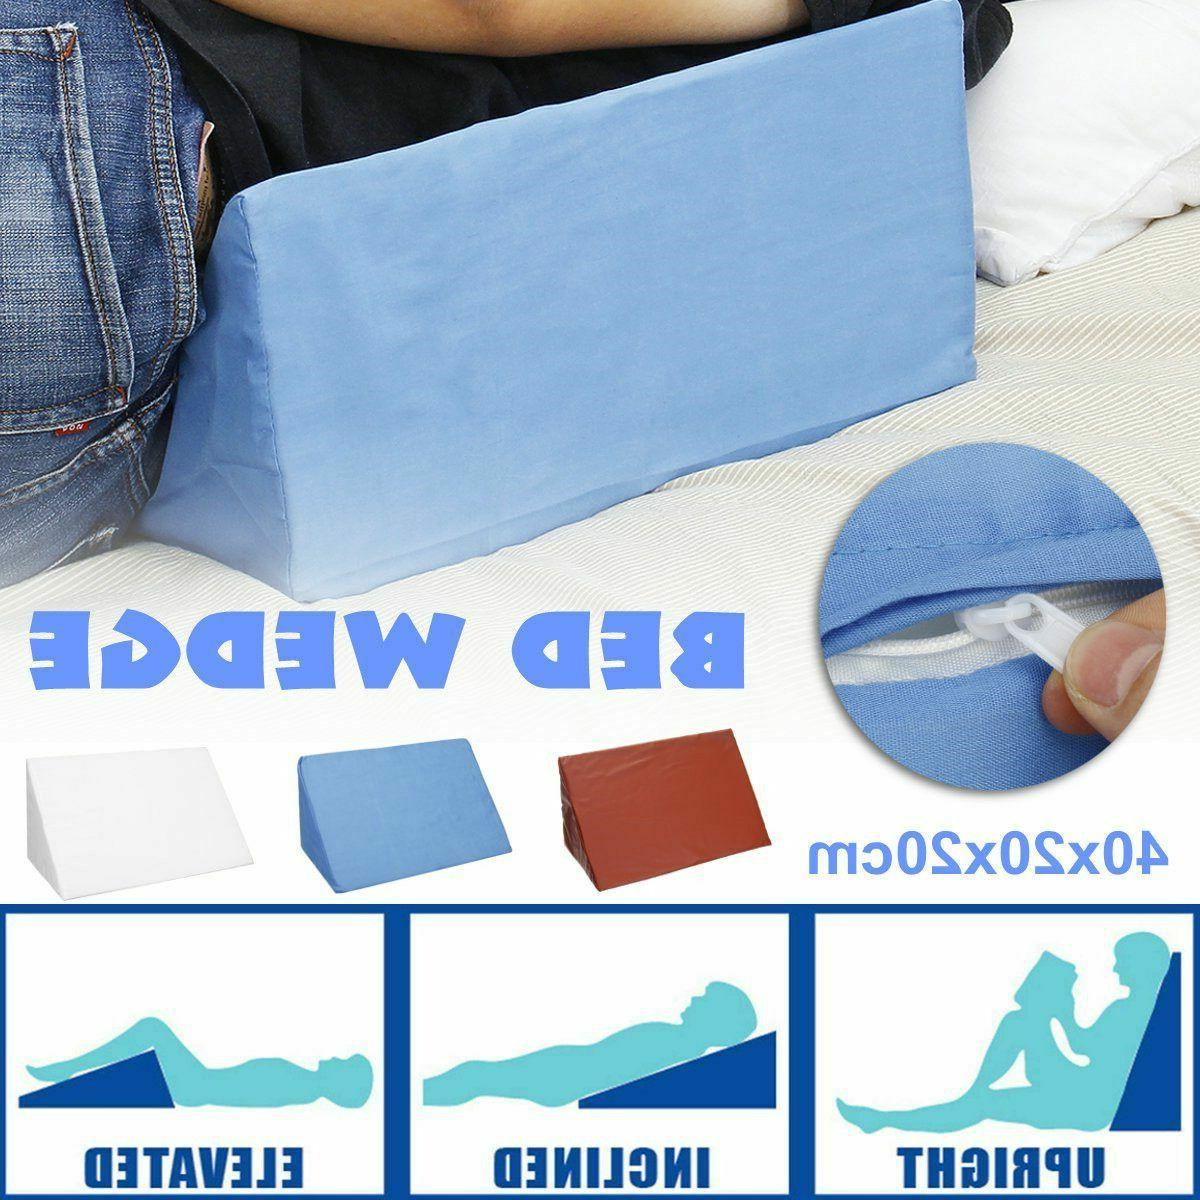 bed wedge pillow foam back neck elevate